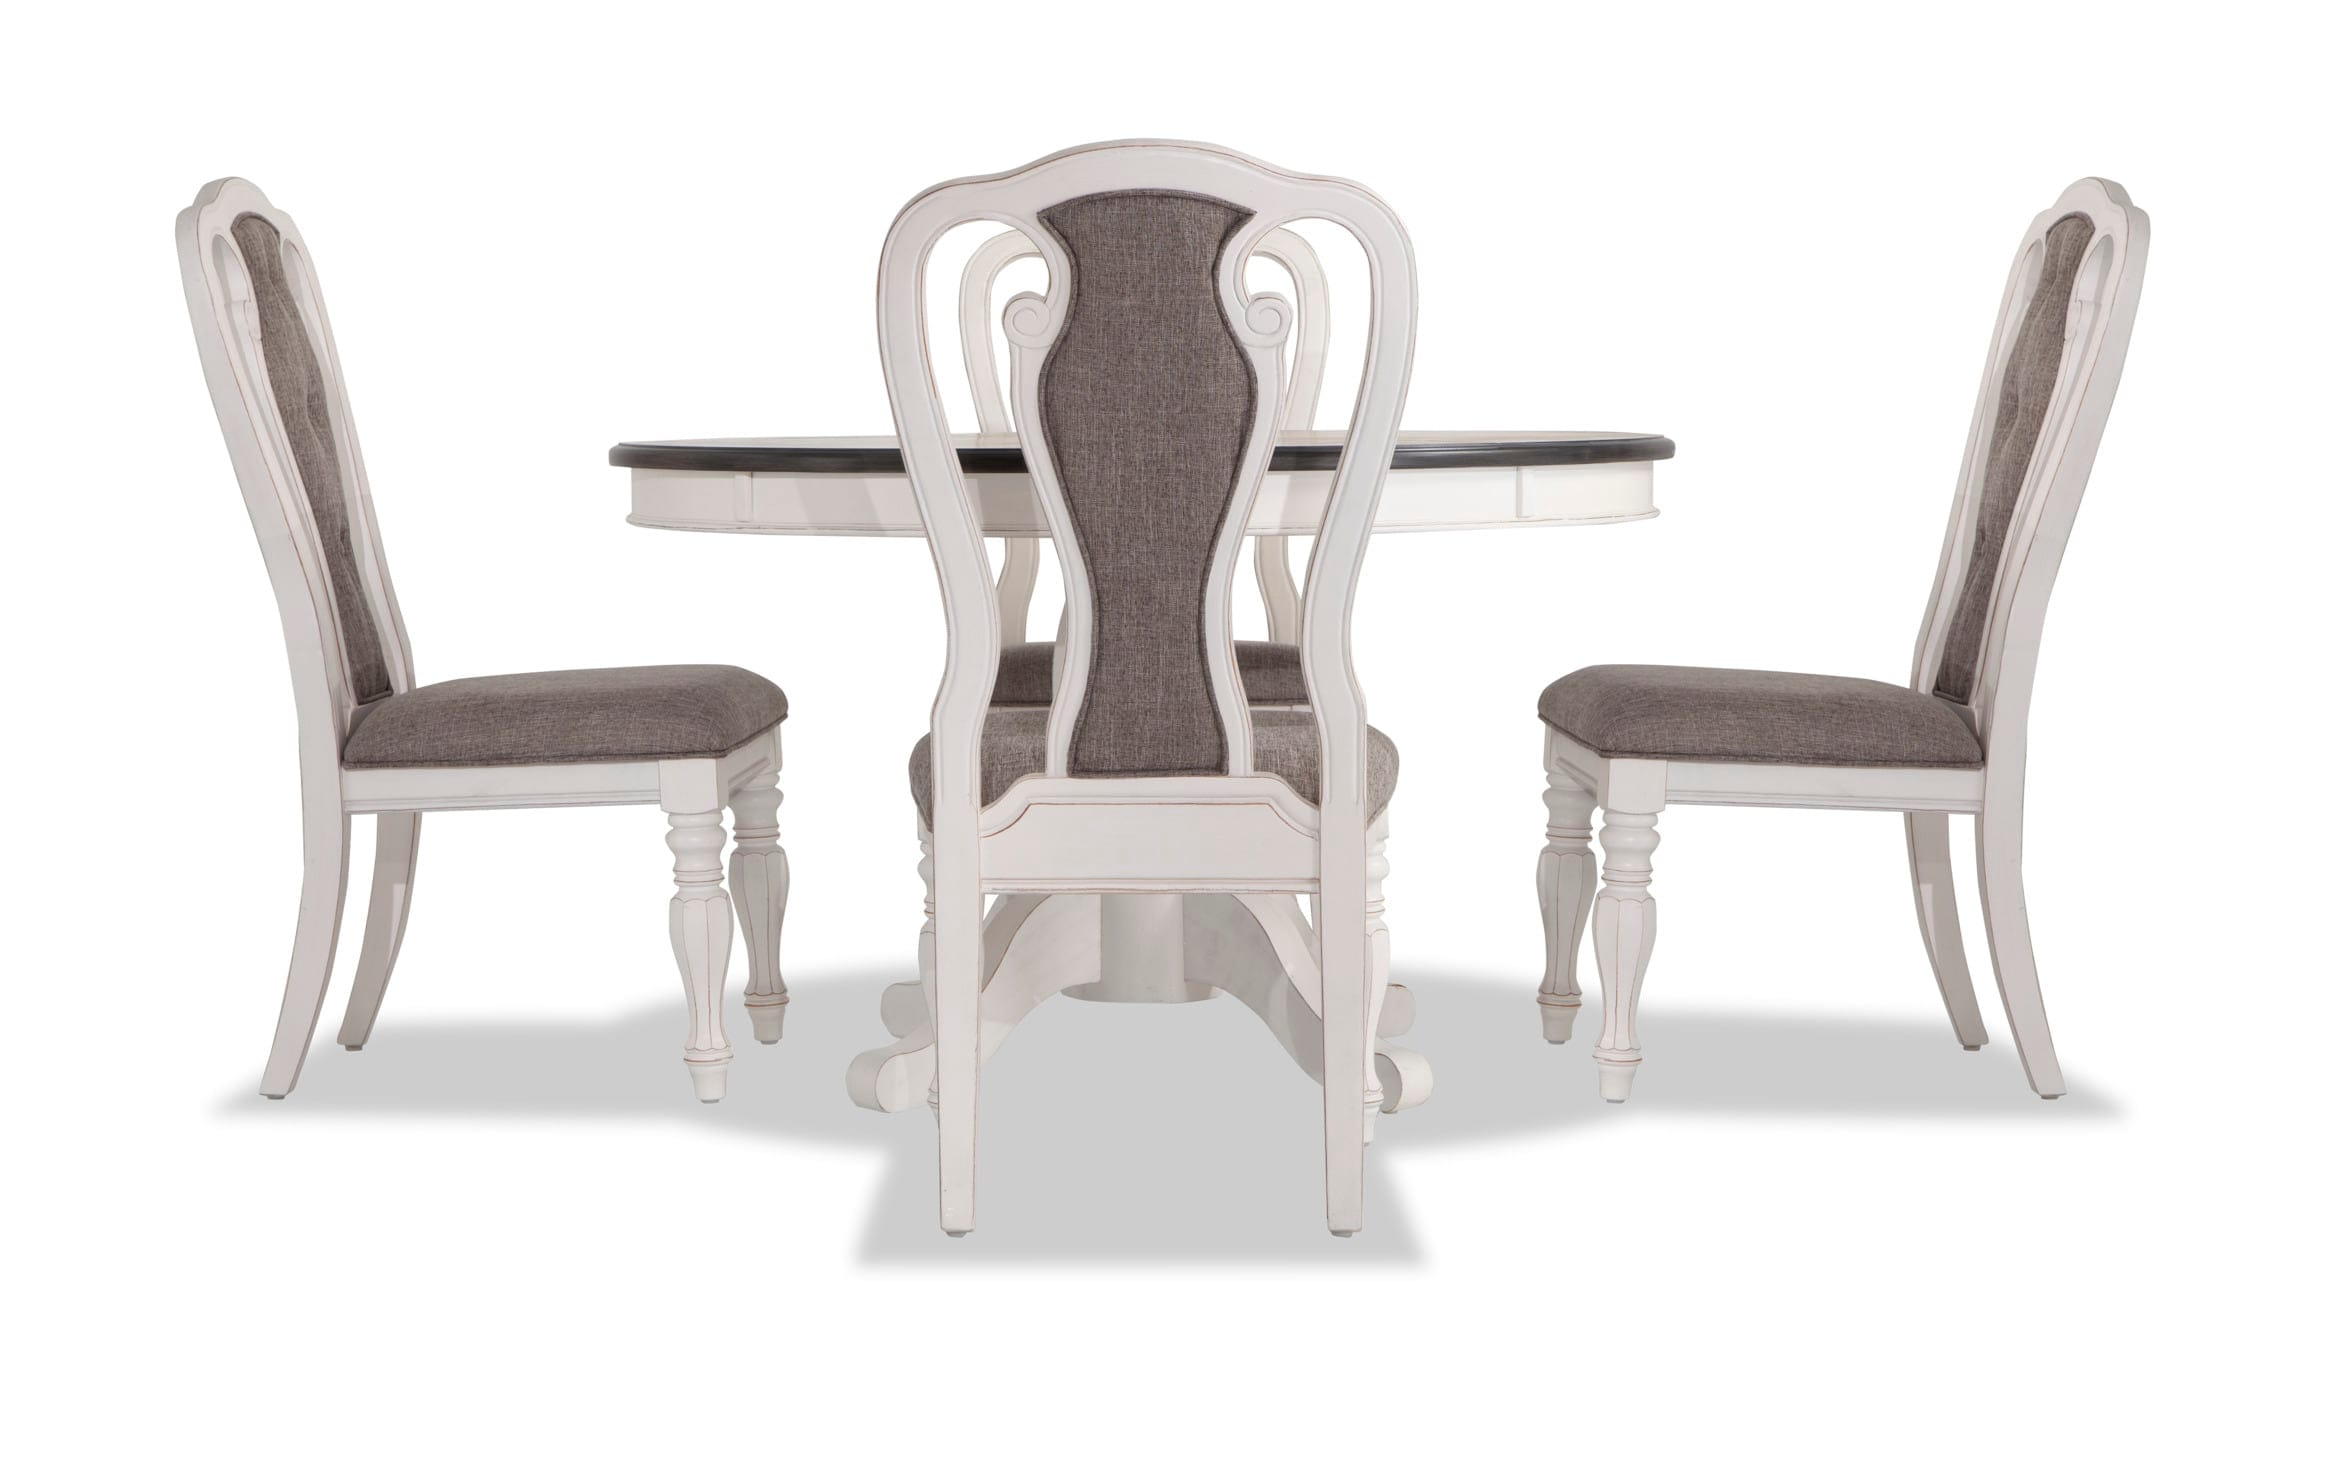 Scarlett Round 5 Piece Dining Set With Splat Back Side Chairs Bobs Com